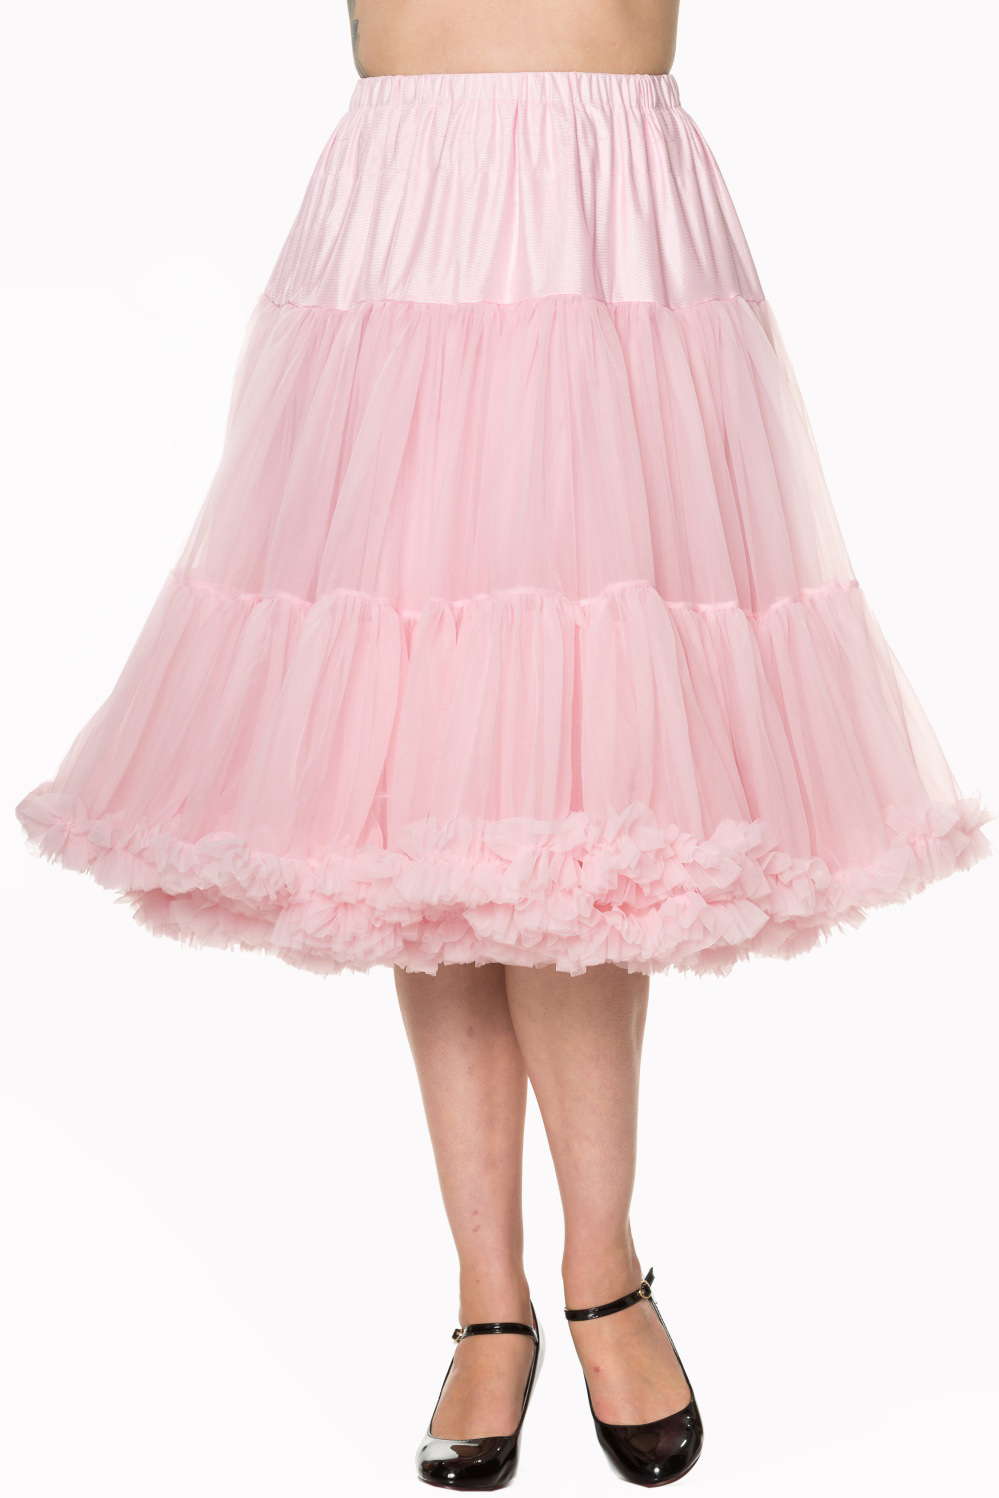 Banned Retro 50s Lizzy Lifeforms Light Pink Petticoat